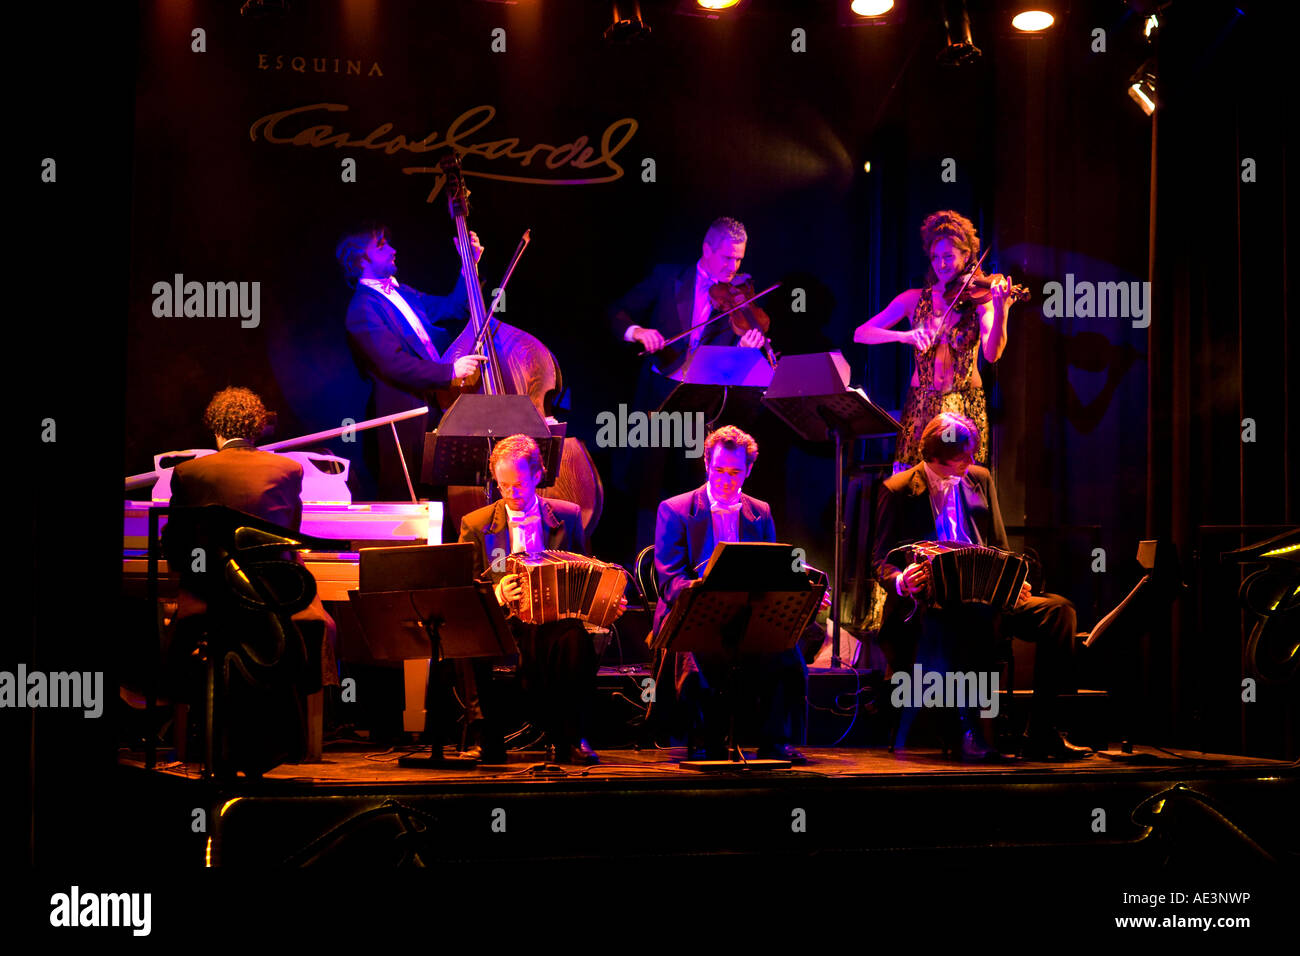 http://c7.alamy.com/comp/AE3NWP/tango-orchestra-on-stage-dinner-tango-spectacle-at-la-esquina-de-carlos-AE3NWP.jpg